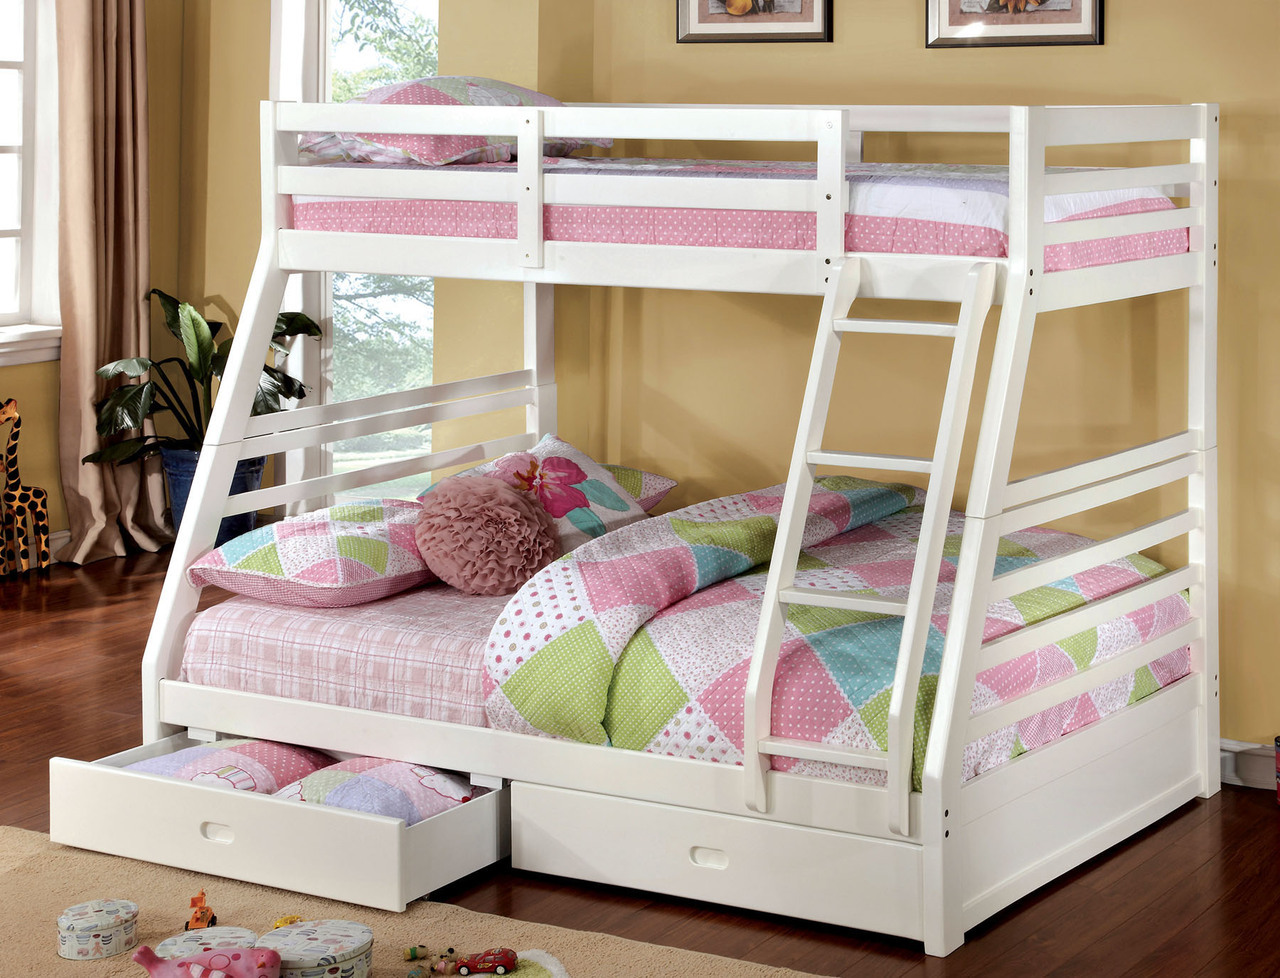 Picture of: White Bunk Beds With Storage Popular